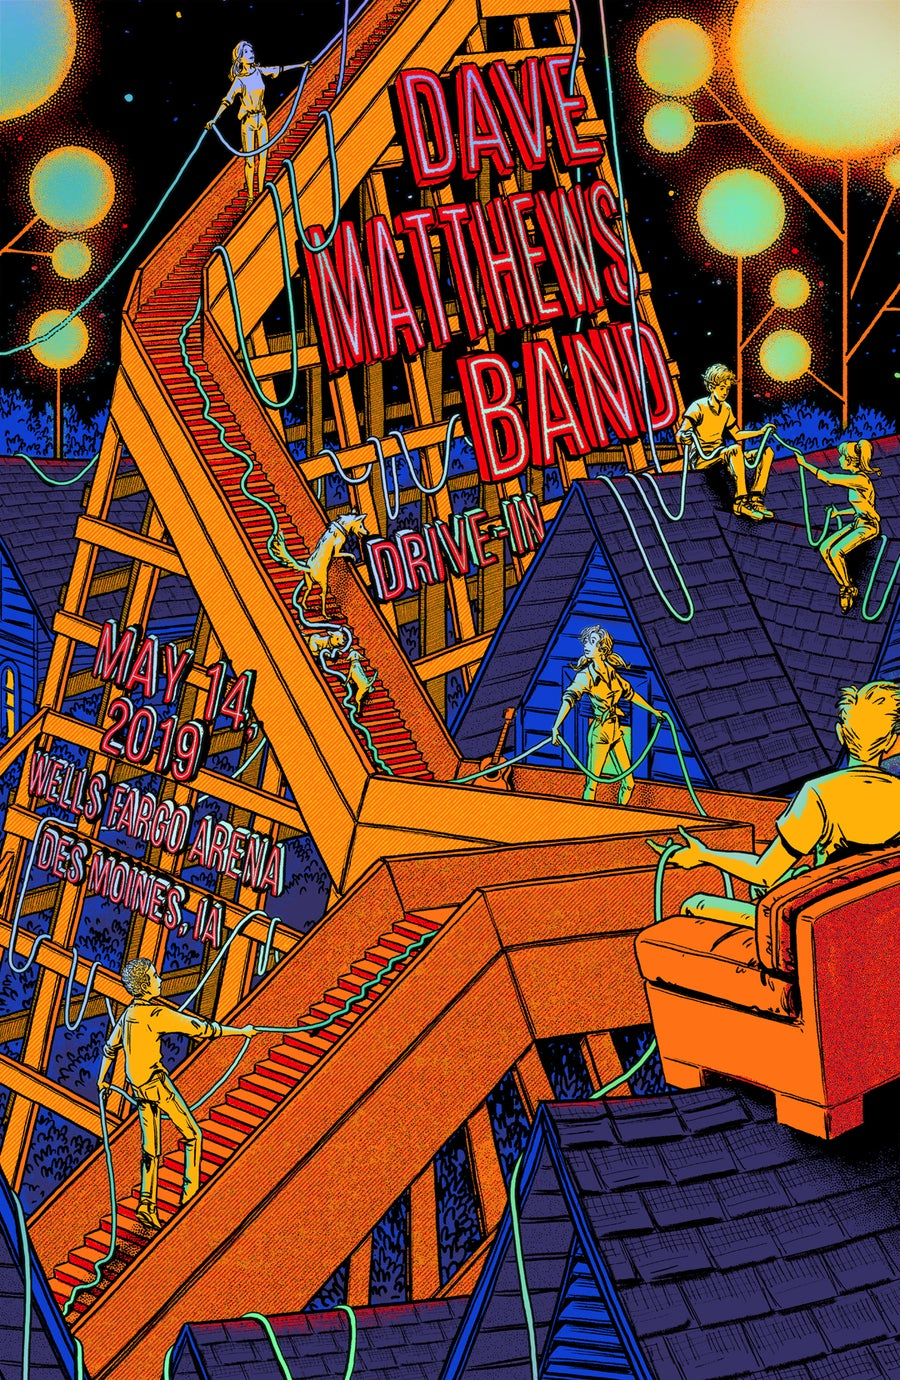 Image of Dave Matthews Band - Drive-In 2020 - Rainbow HoloFoil